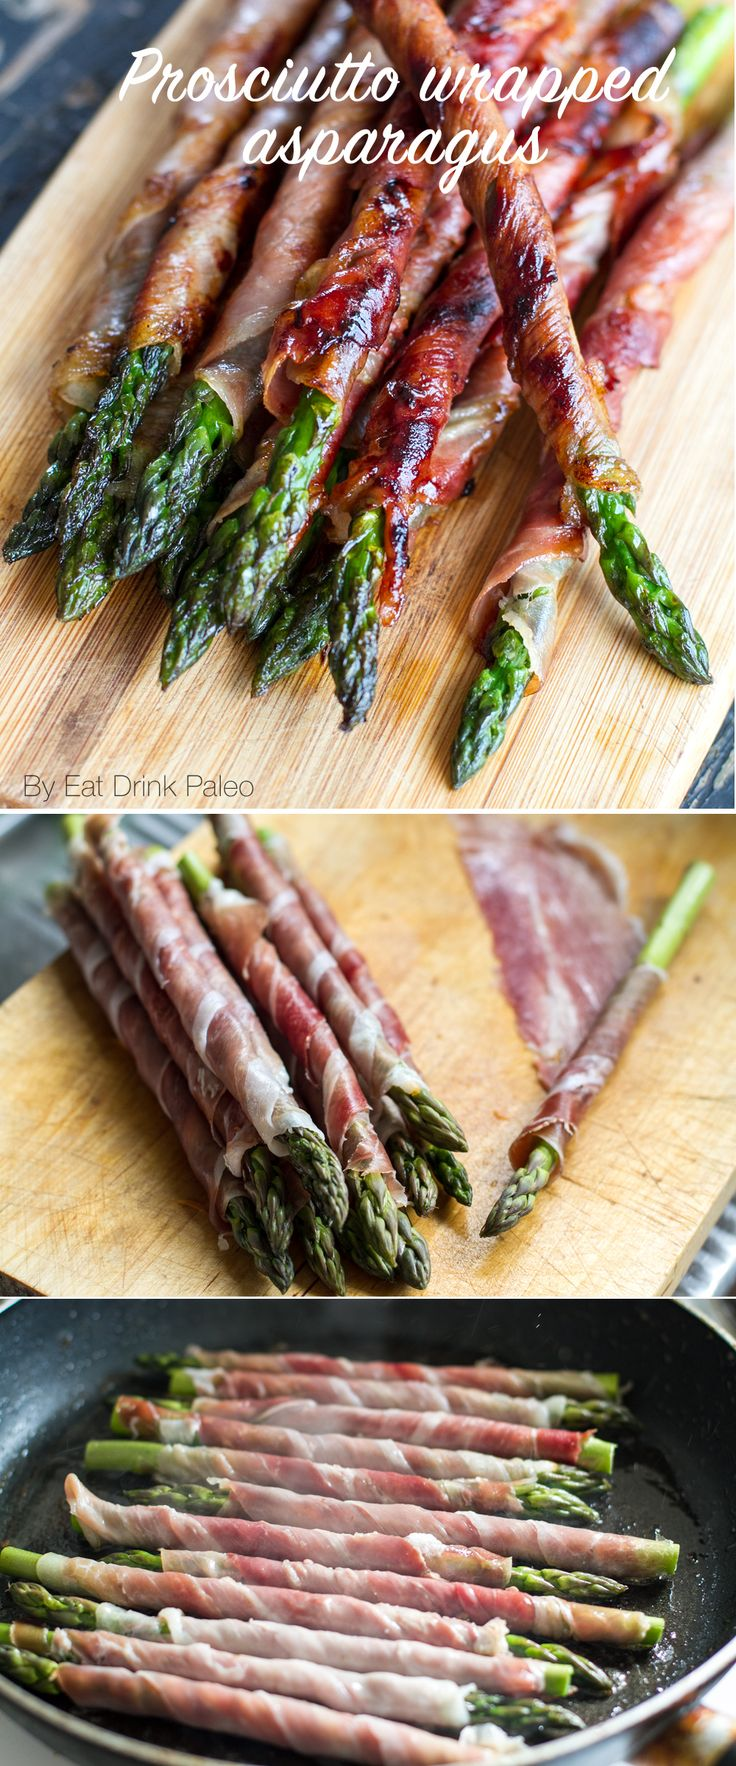 Prosciutto Wrapped Asparagus - simple and perfect for entertaining or as a appetizer. Check the full instructions and recipe here:http://eatdrinkpaleo.com.au/prosciutto-wrapped-asparagus-recipe/